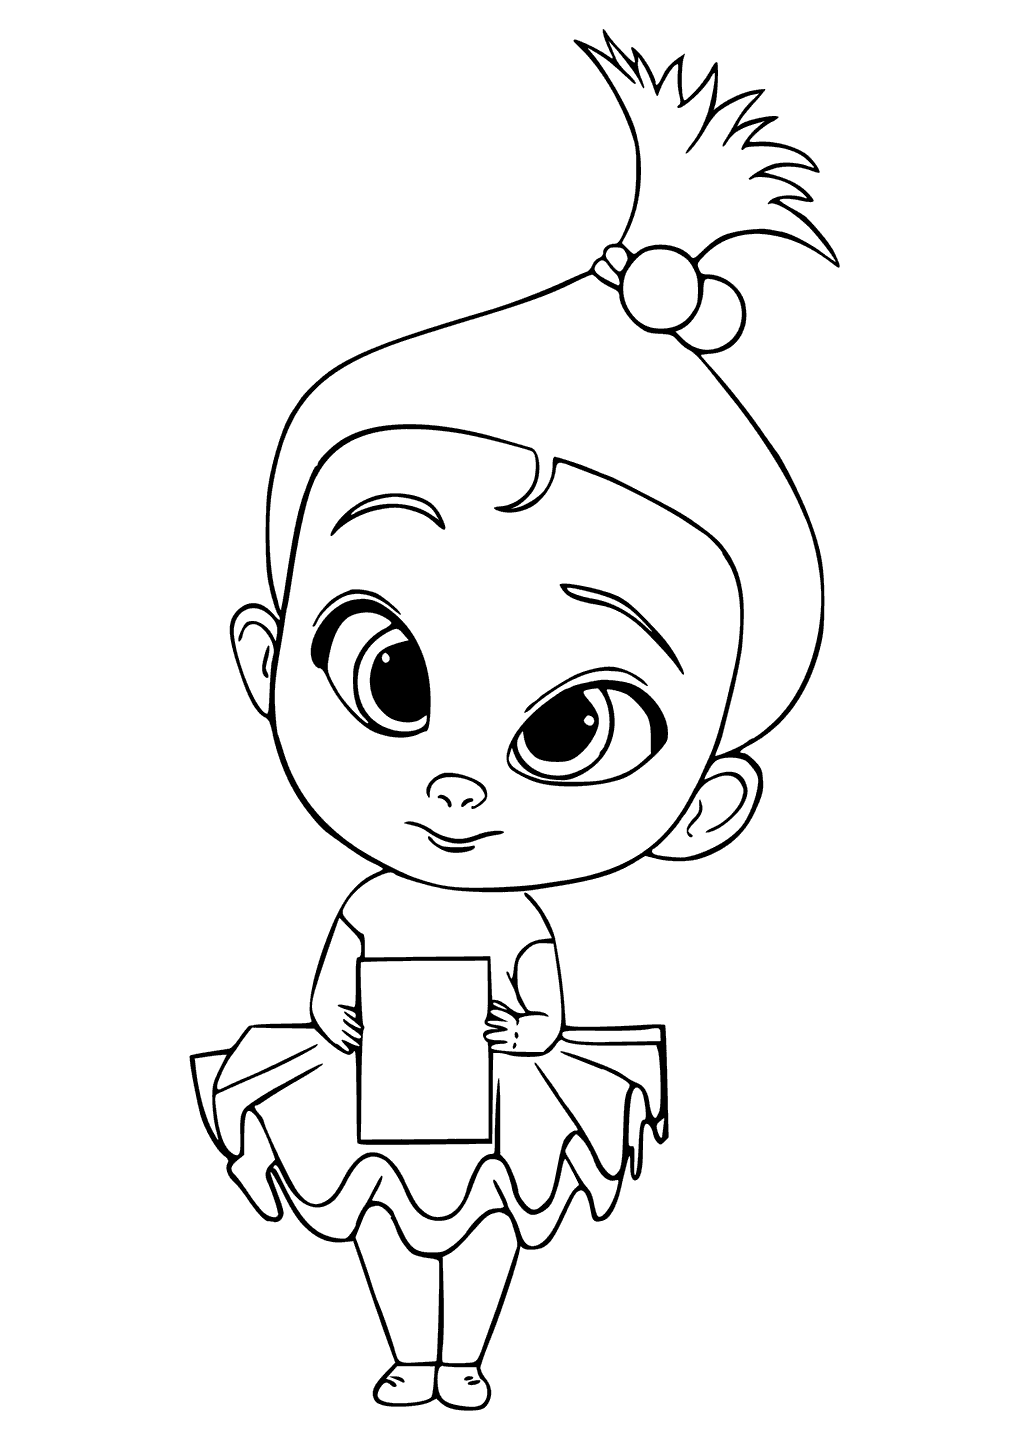 toddler kids coloring pages pdf boss baby coloring pages best coloring pages for kids toddler pdf pages kids coloring